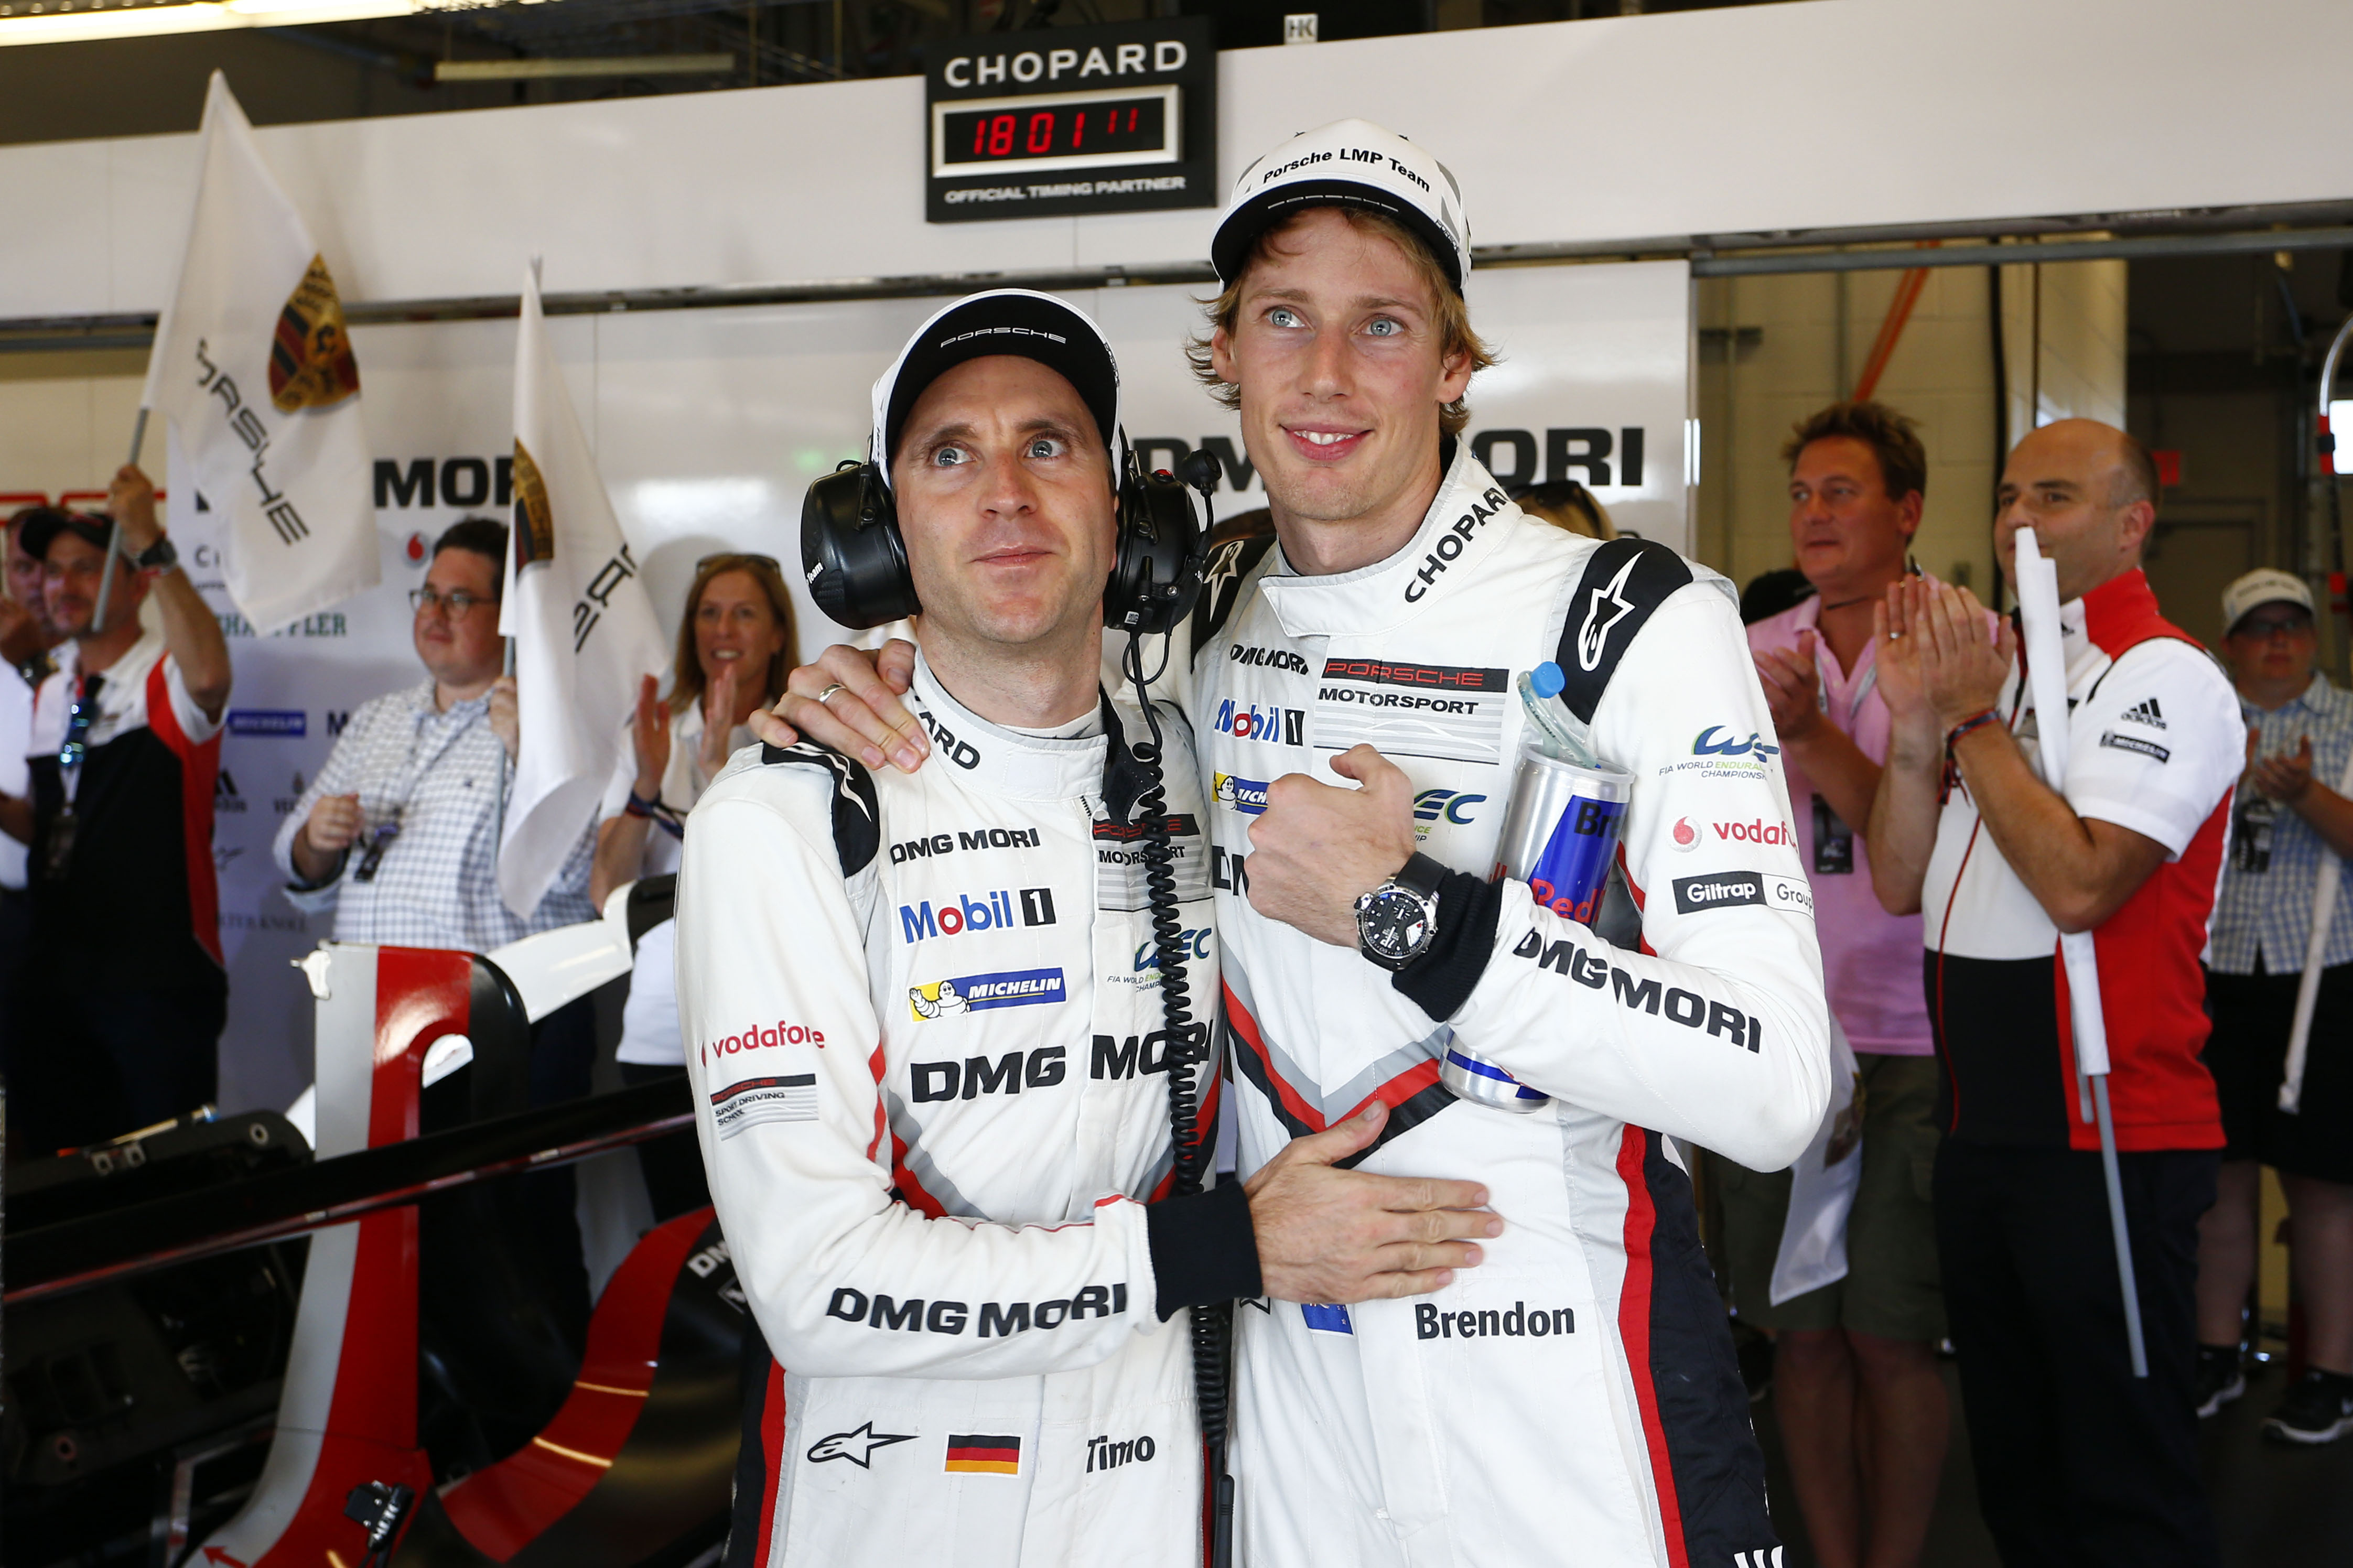 Timo Bernhard, Brendon Hartley